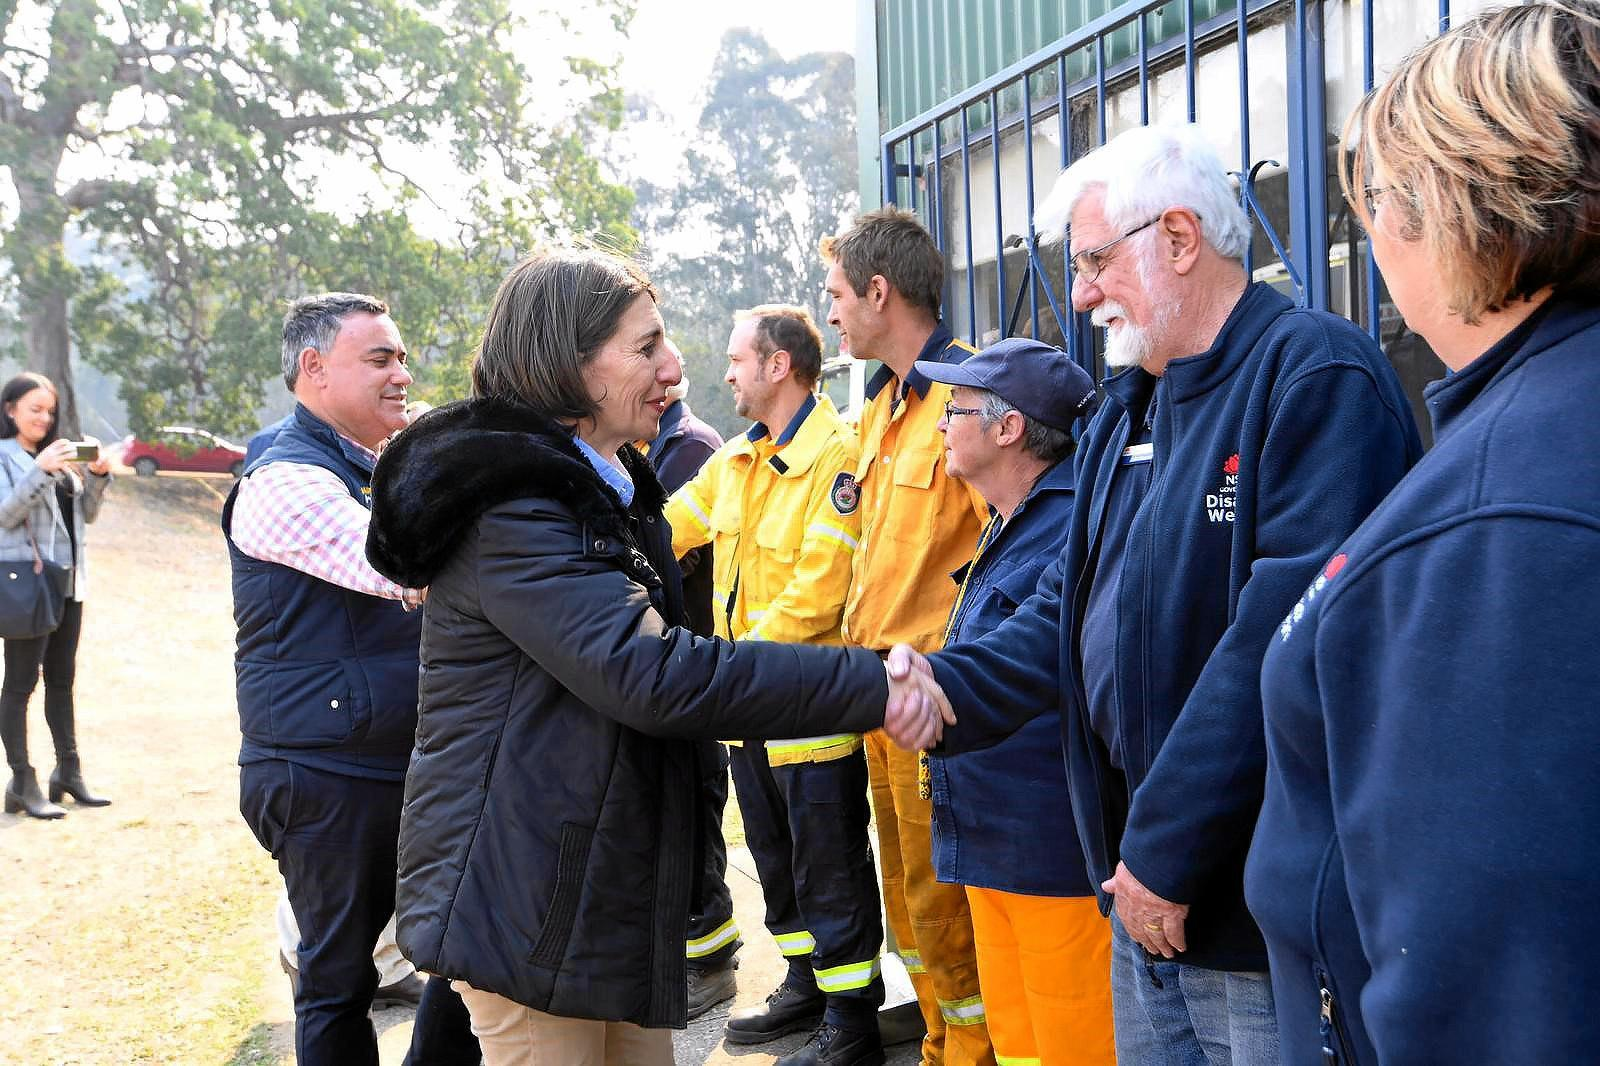 NSW Premier Gladys Berejiklian and deputy John Barilaro meet the community at Drake who have been battling fires since last week.